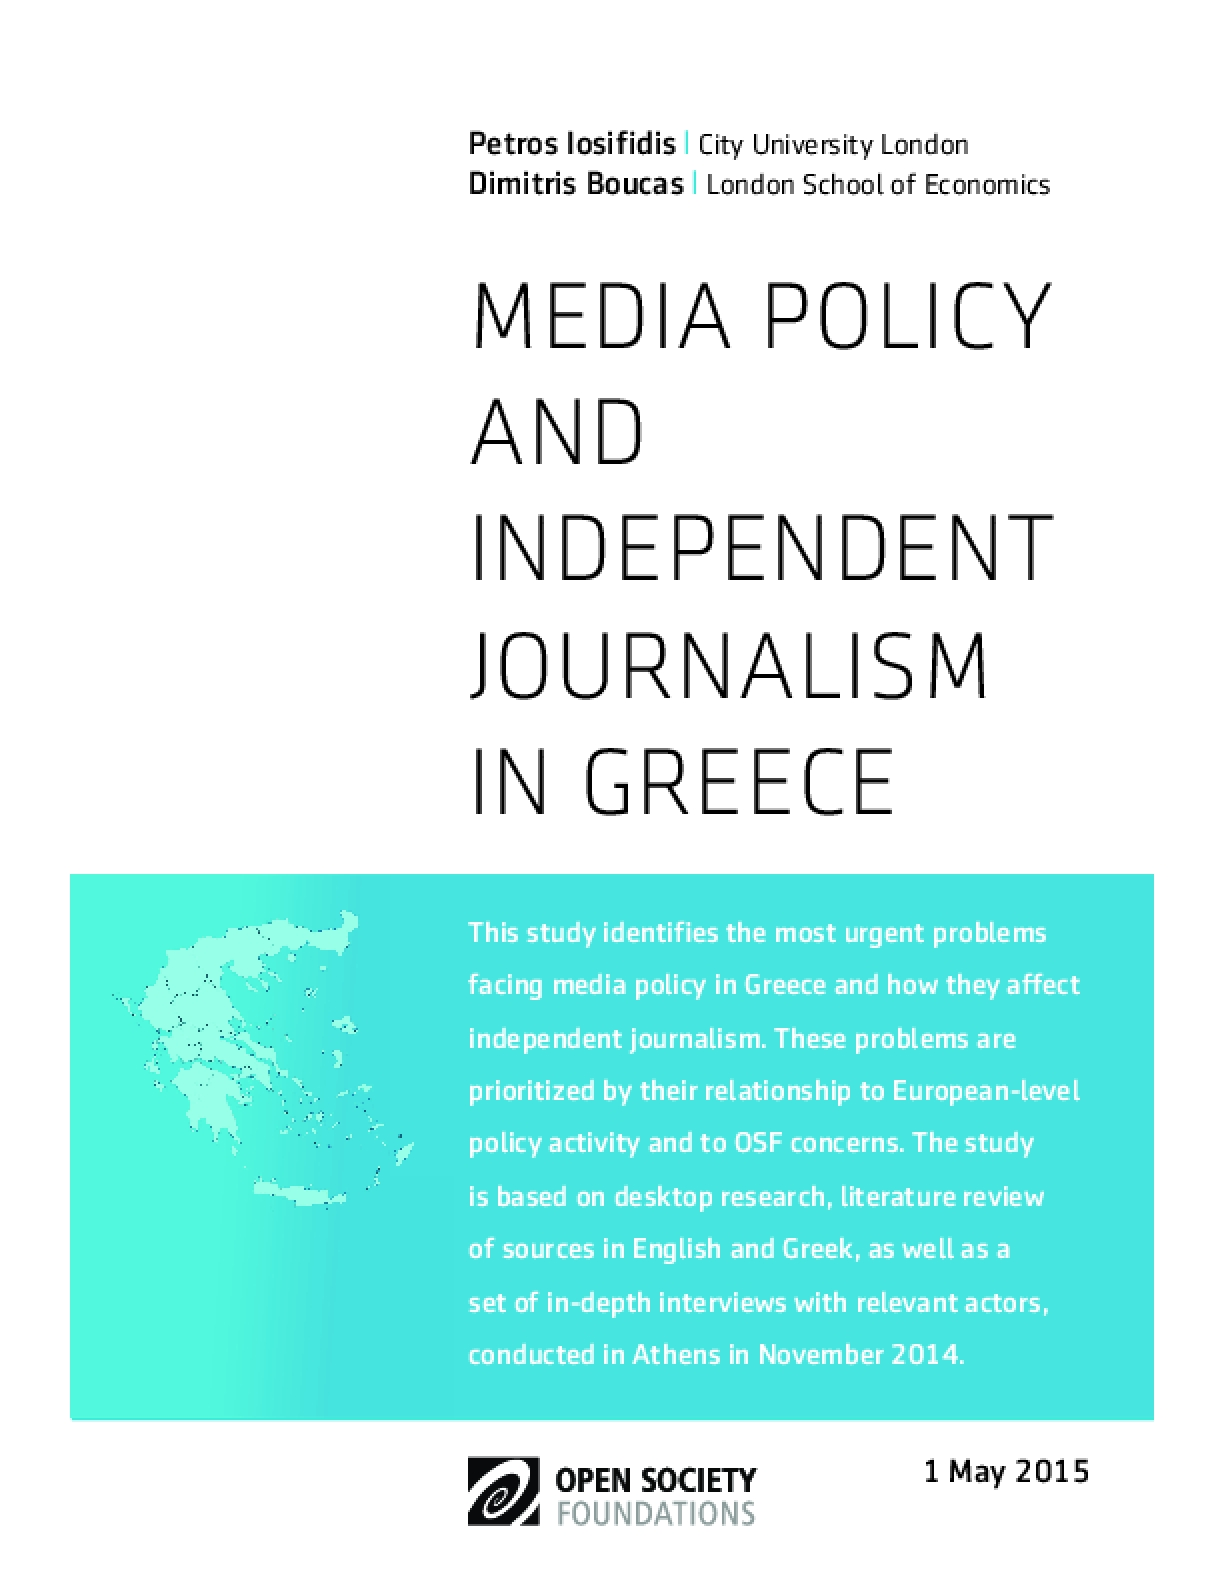 Media Policy and Independent Journalism in Greece